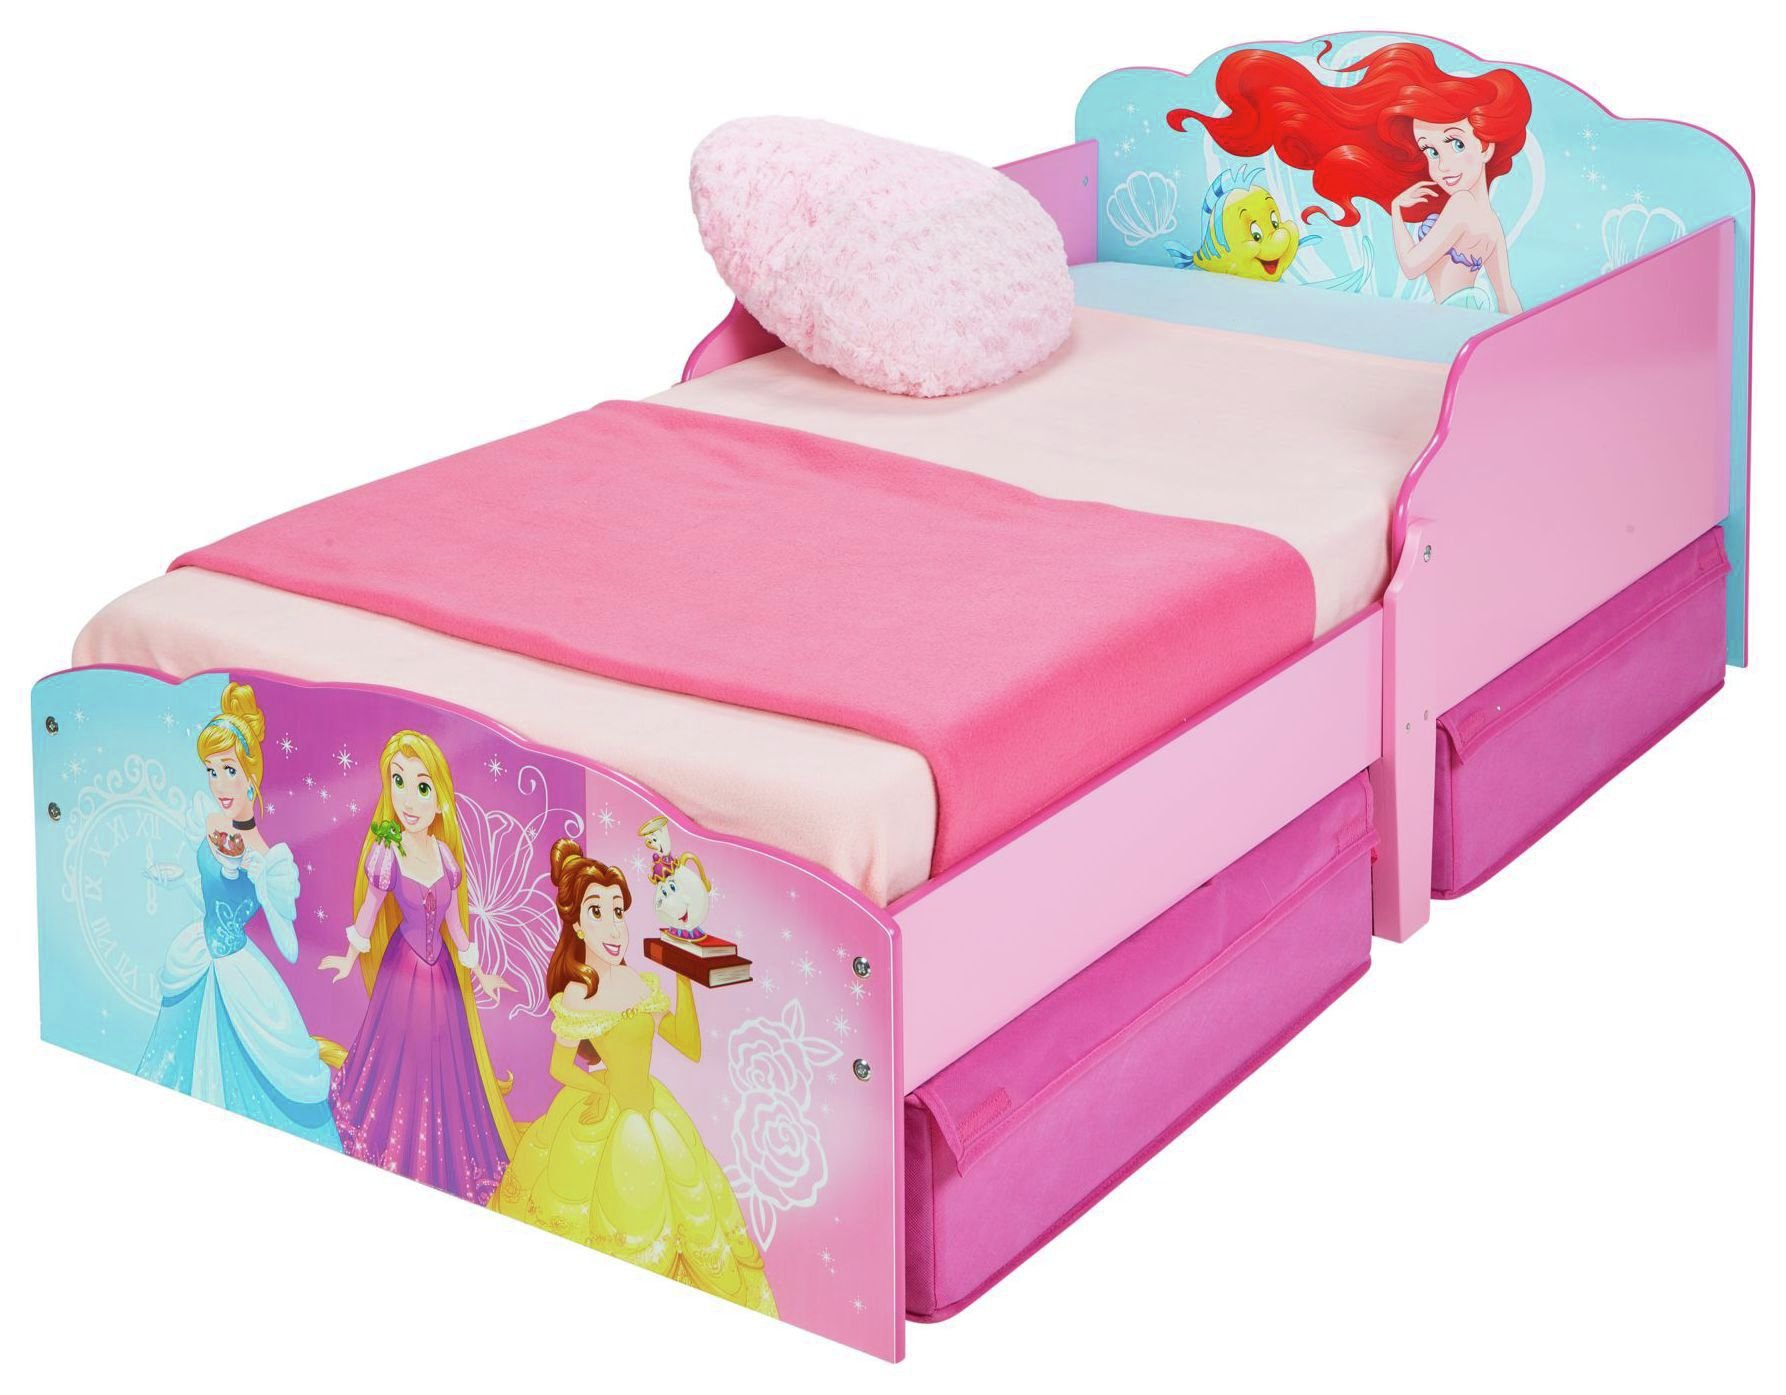 Disney New Princess Toddler Bed with Drawer.